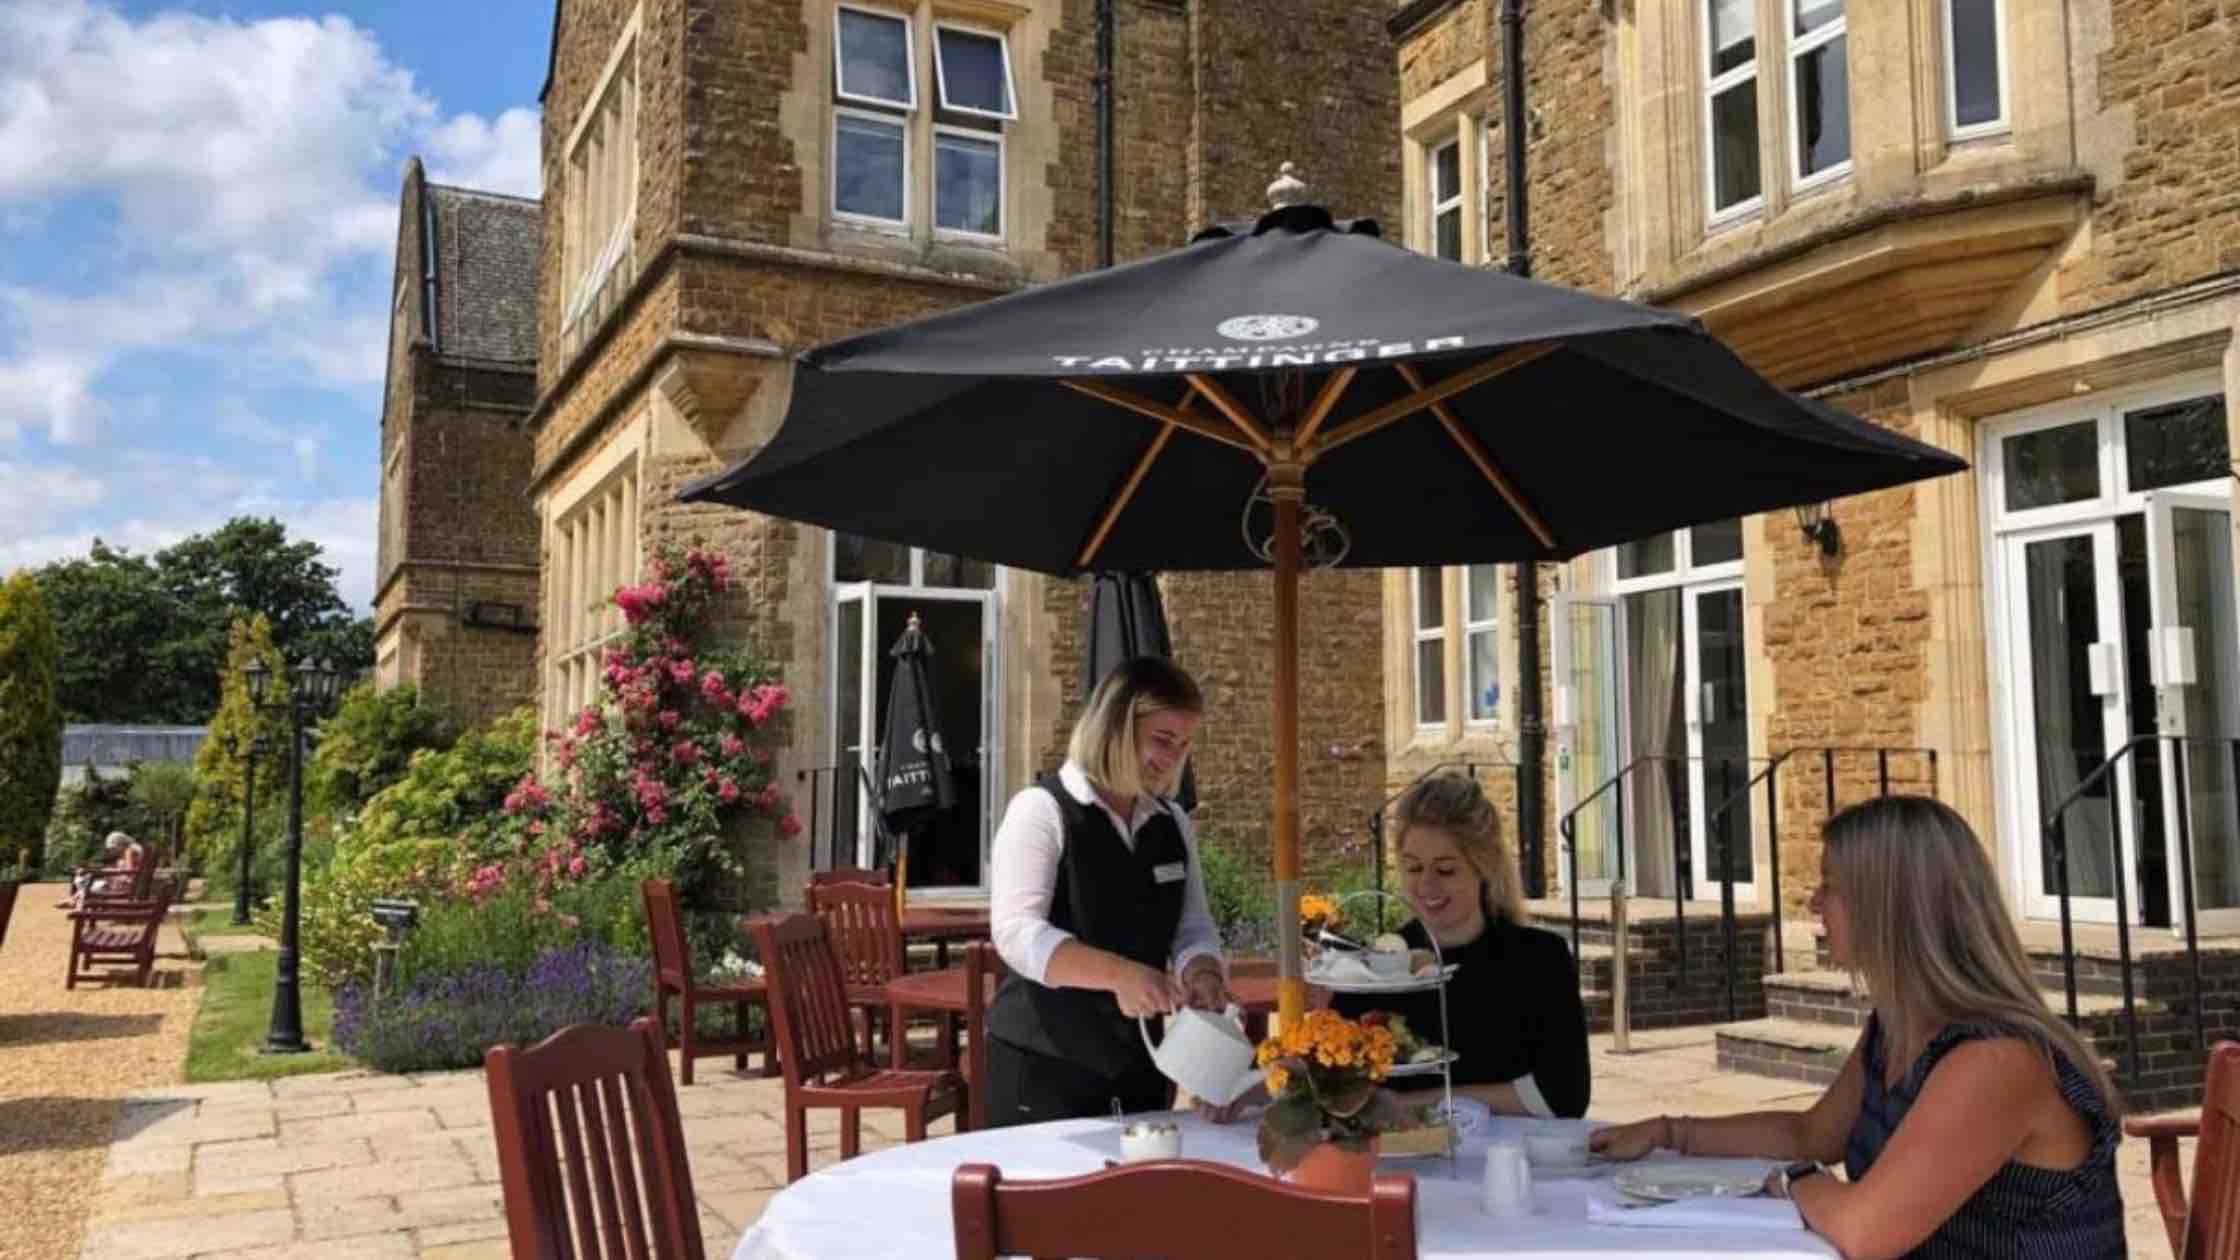 Afternoon tea outside at Hartsfield Manor